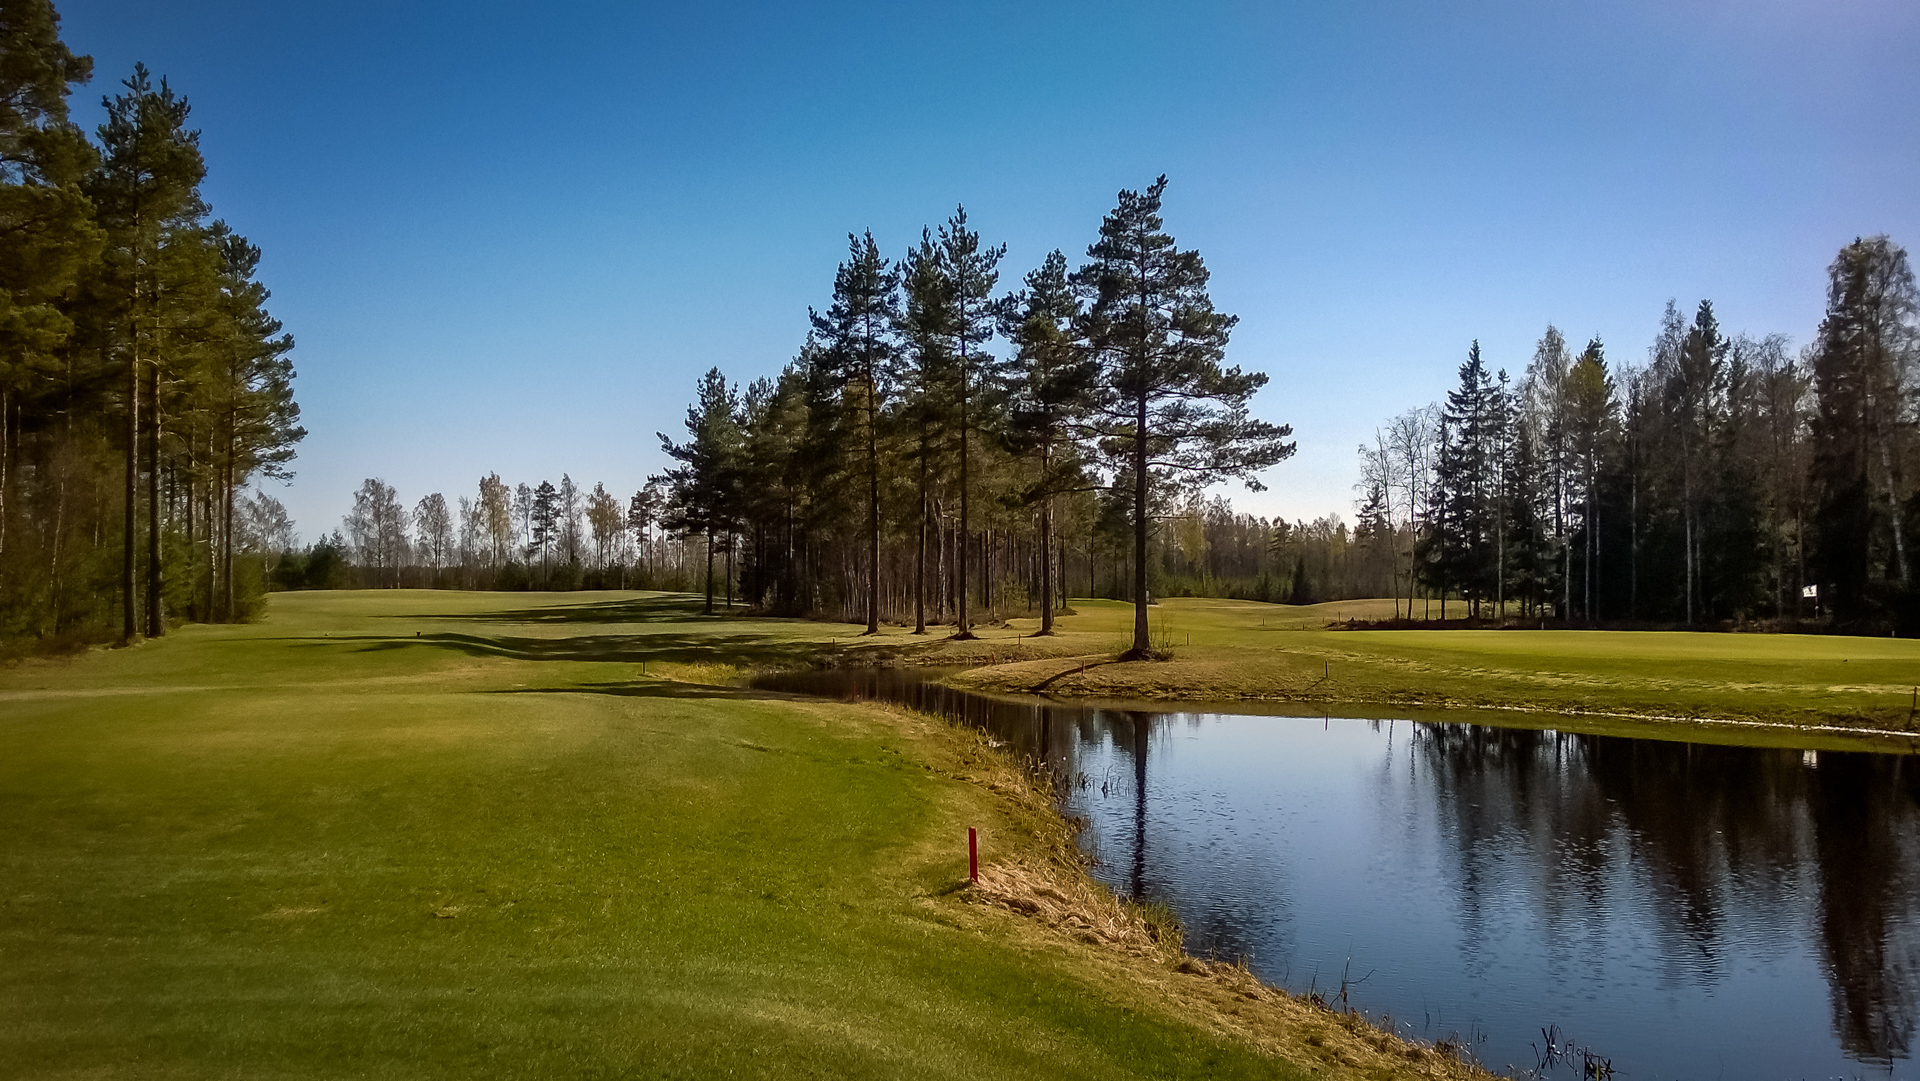 HanGolf Fairway View in May 2014.